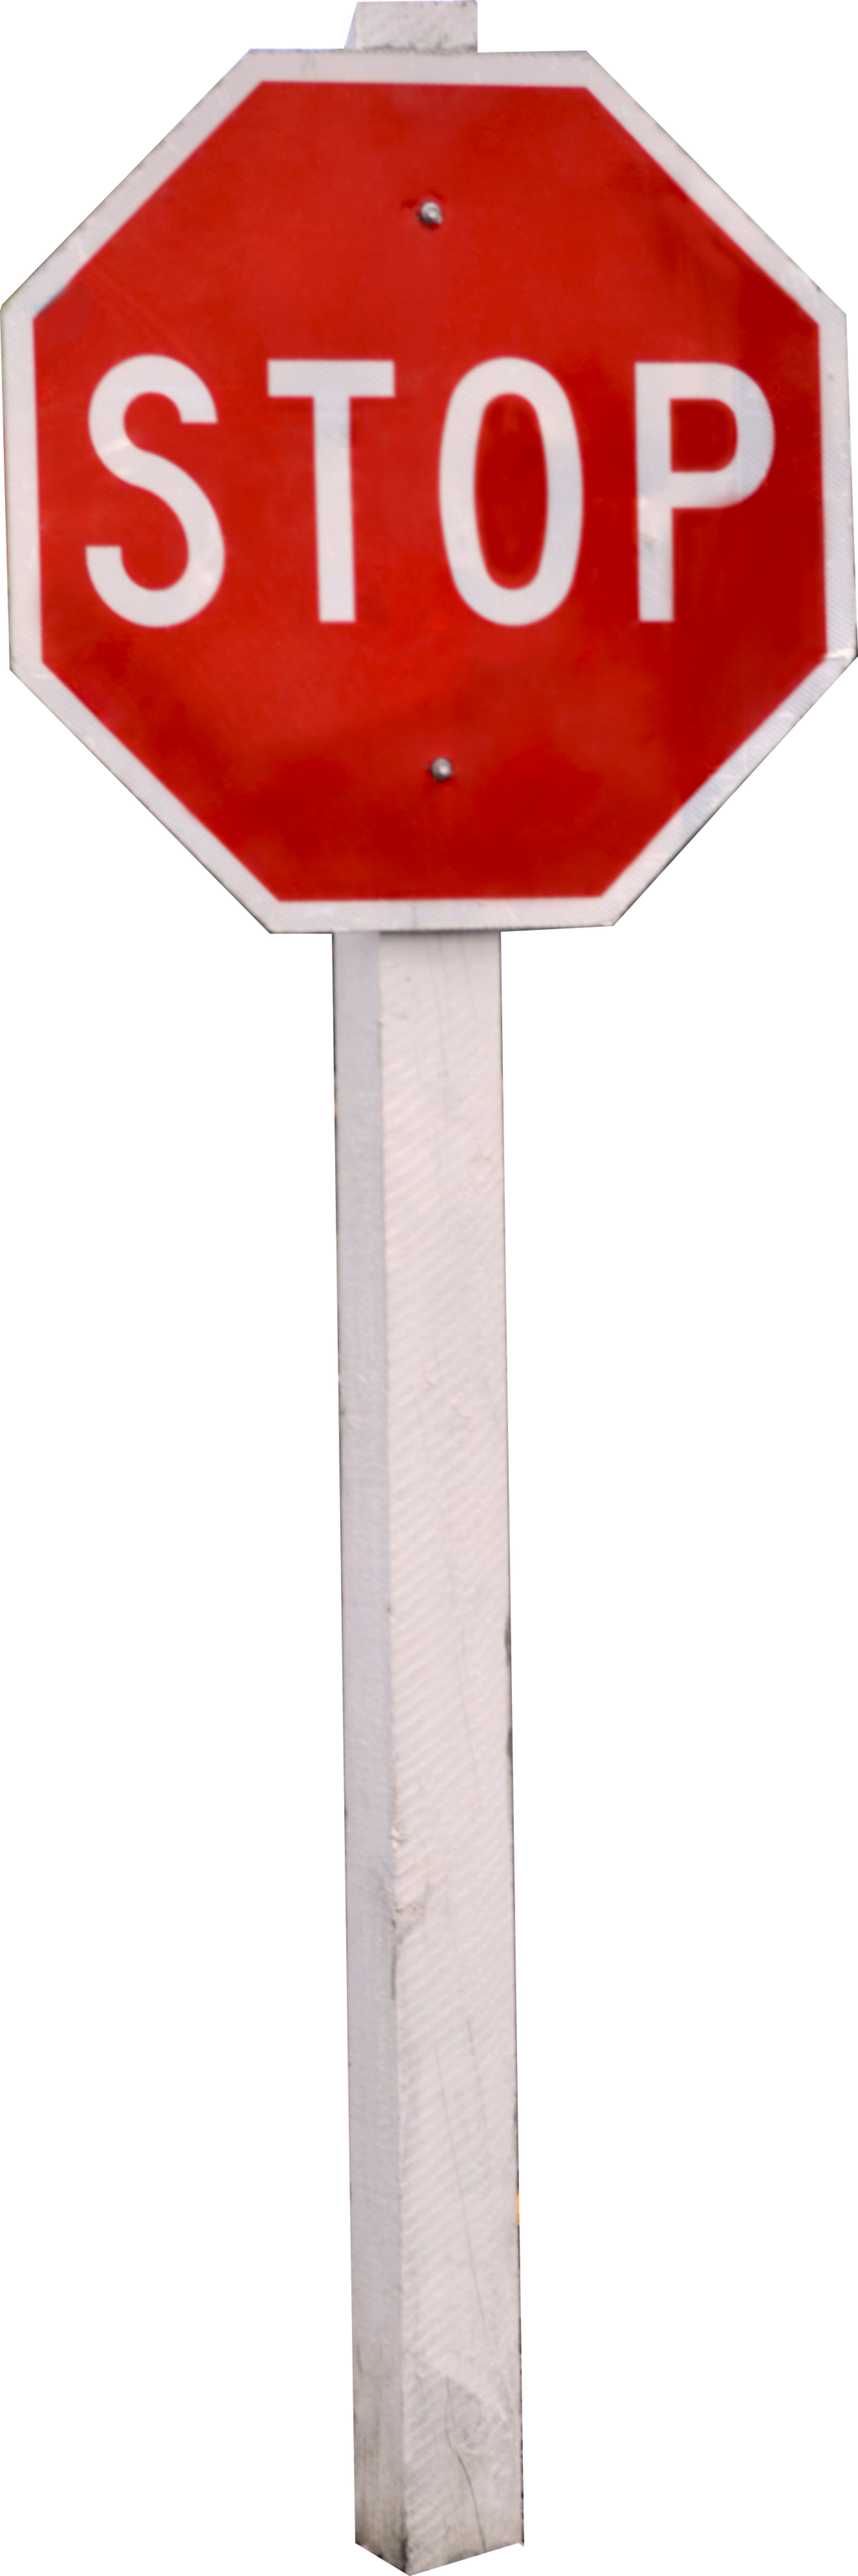 Download For Free Stop Sign Png In High Resolution image #27230